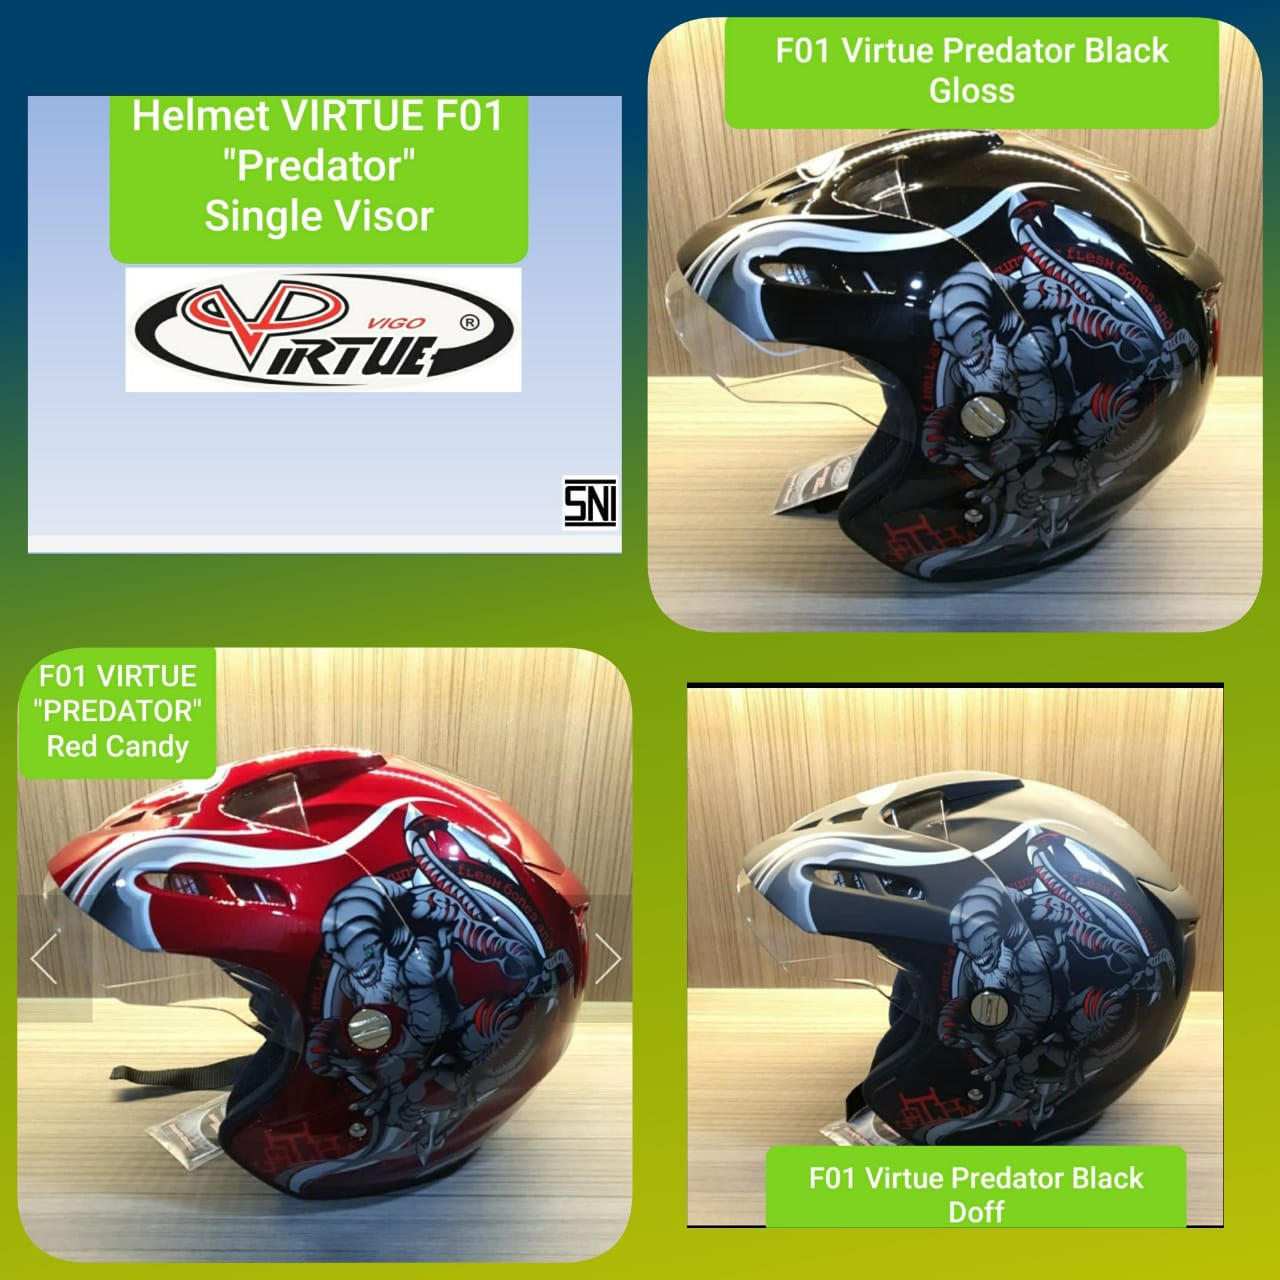 TYPE F01 Virtue Predator Single Visor